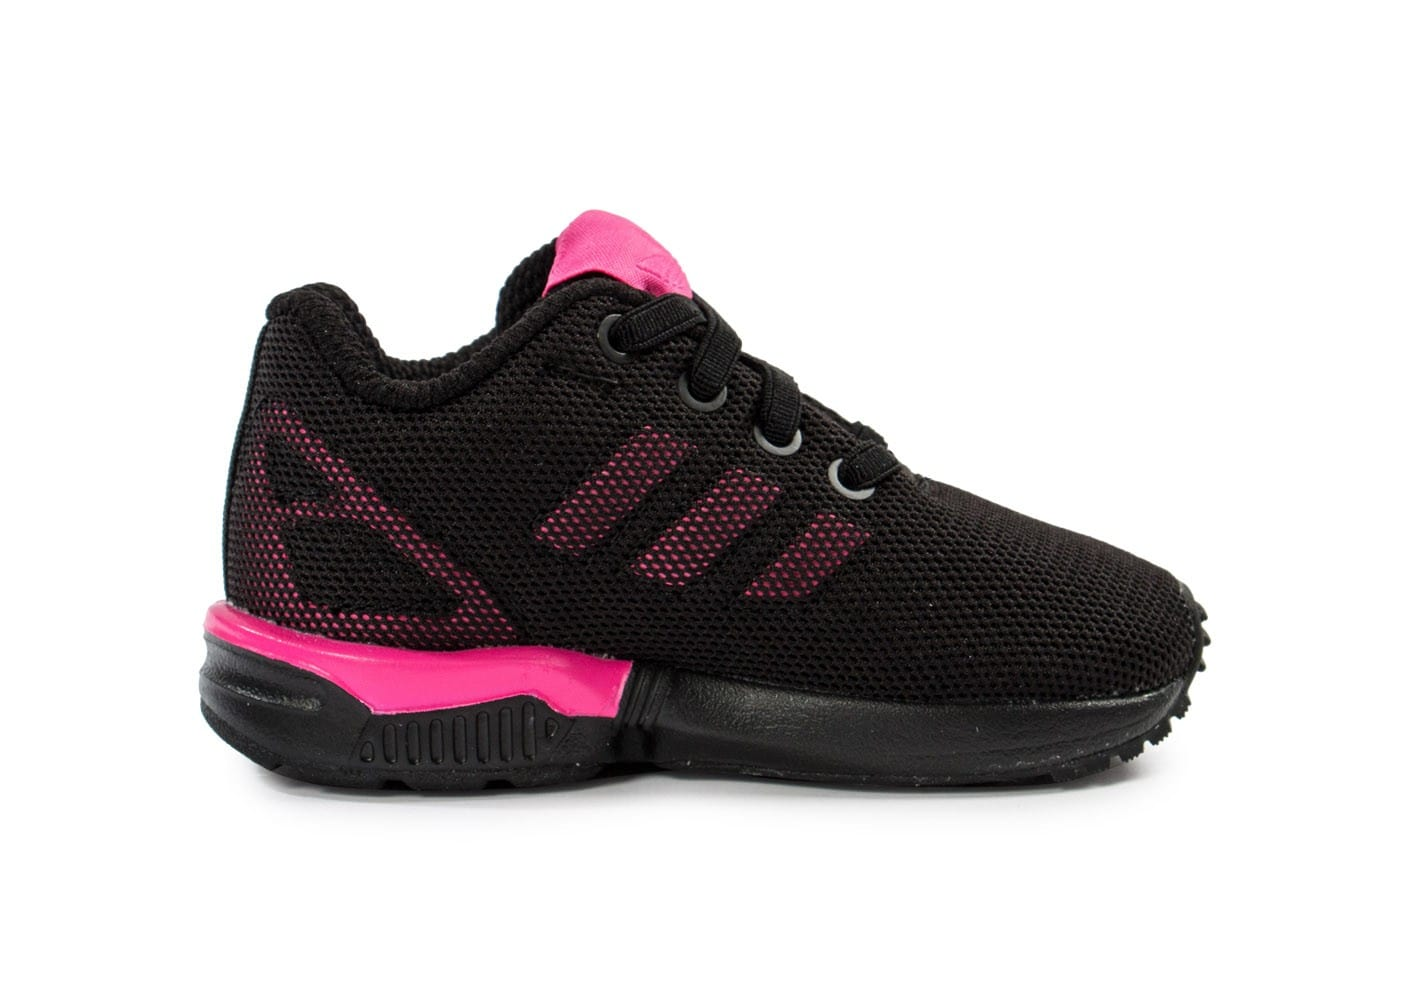 Chaussures Adidas ZX roses Casual enfant jKu0XOJBK